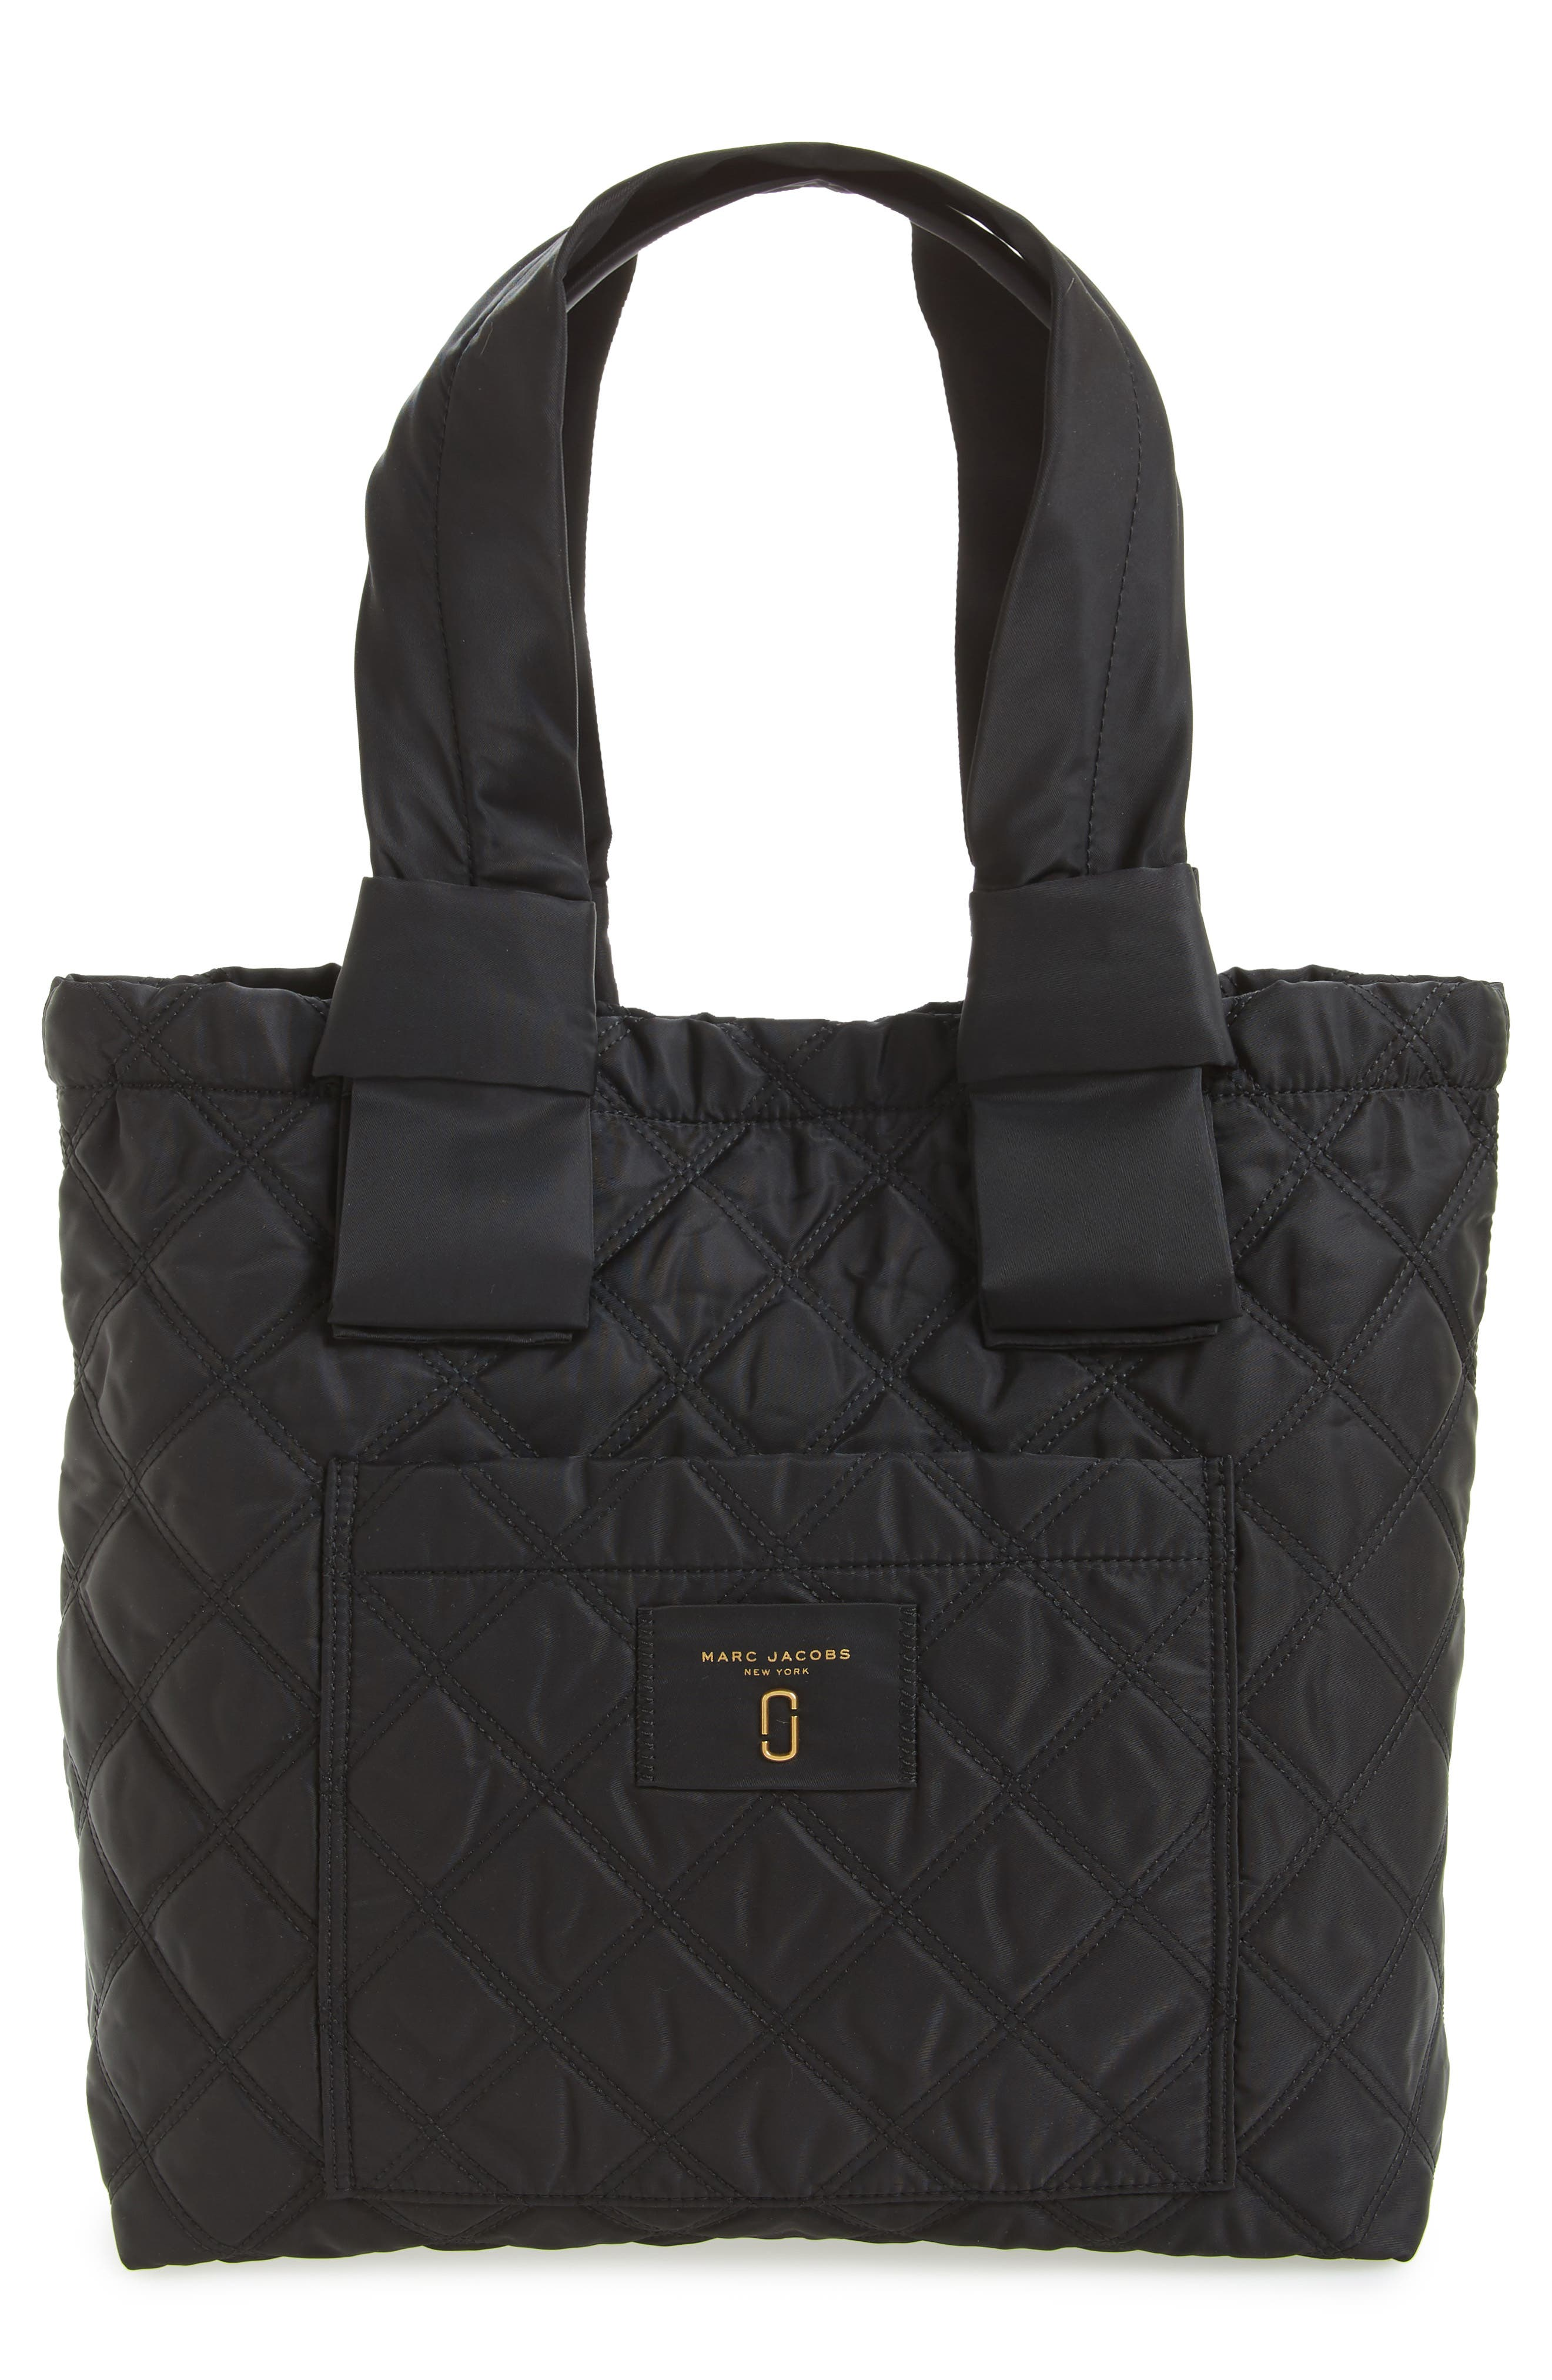 MARC JACOBS Knot Tote